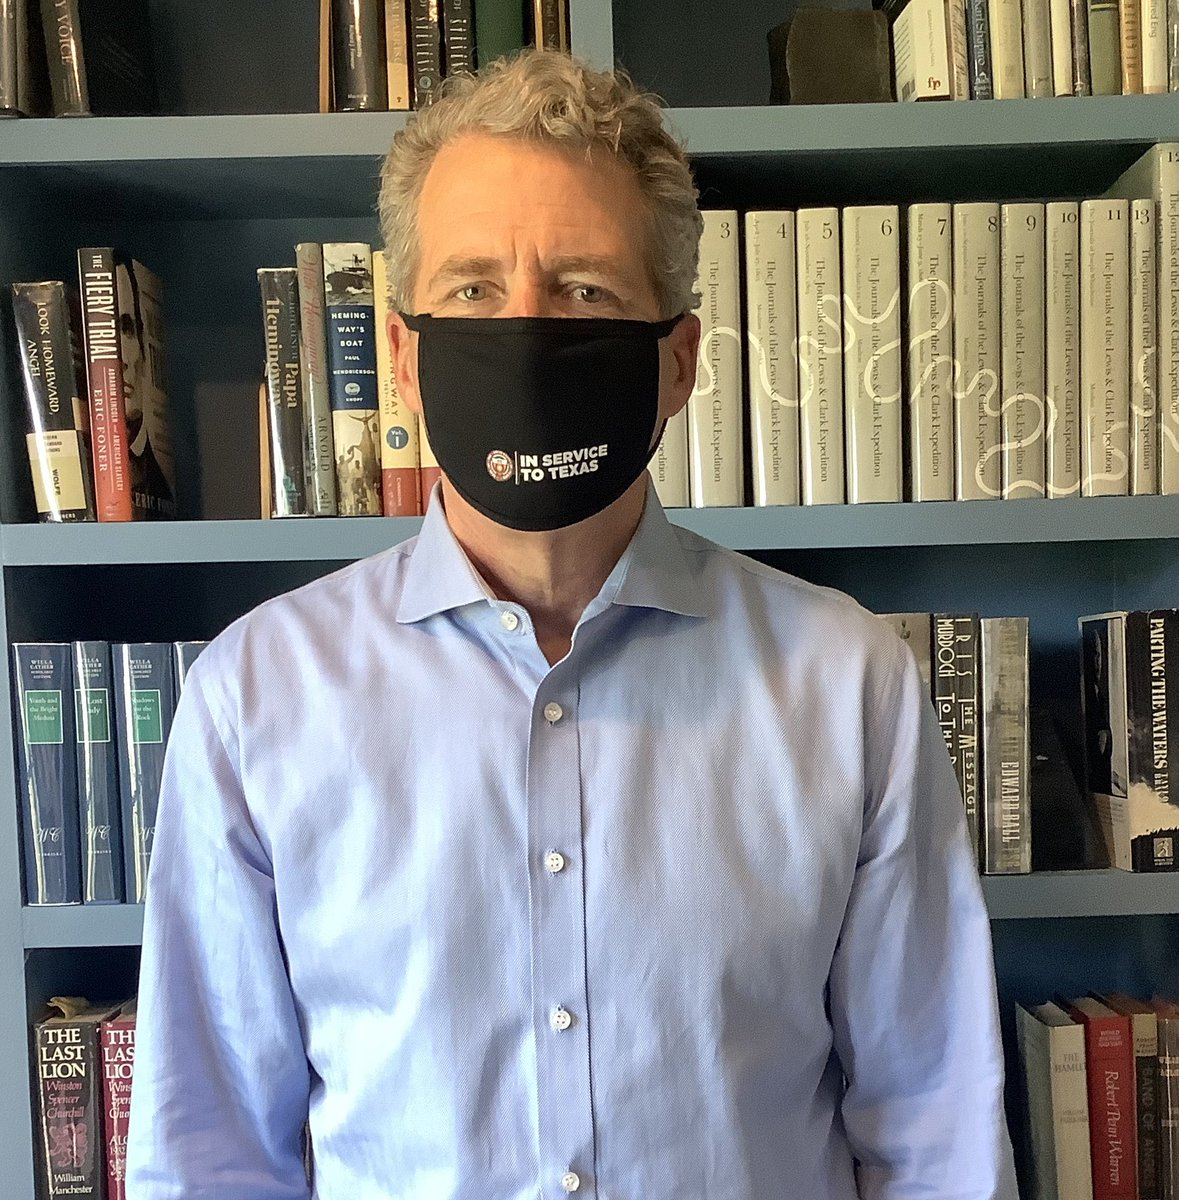 I'm smiling at @TeddLMitchell underneath.Everyone in Texas needs to mask up, including our students, faculty and staff.  #FaceMasks4HigherEd  Let's see @UHpres @chancellorroe Brian McCall @TXStateUnivSyst and my favorite Aggie!  @tamusystem https://t.co/7LeKrzVH0n